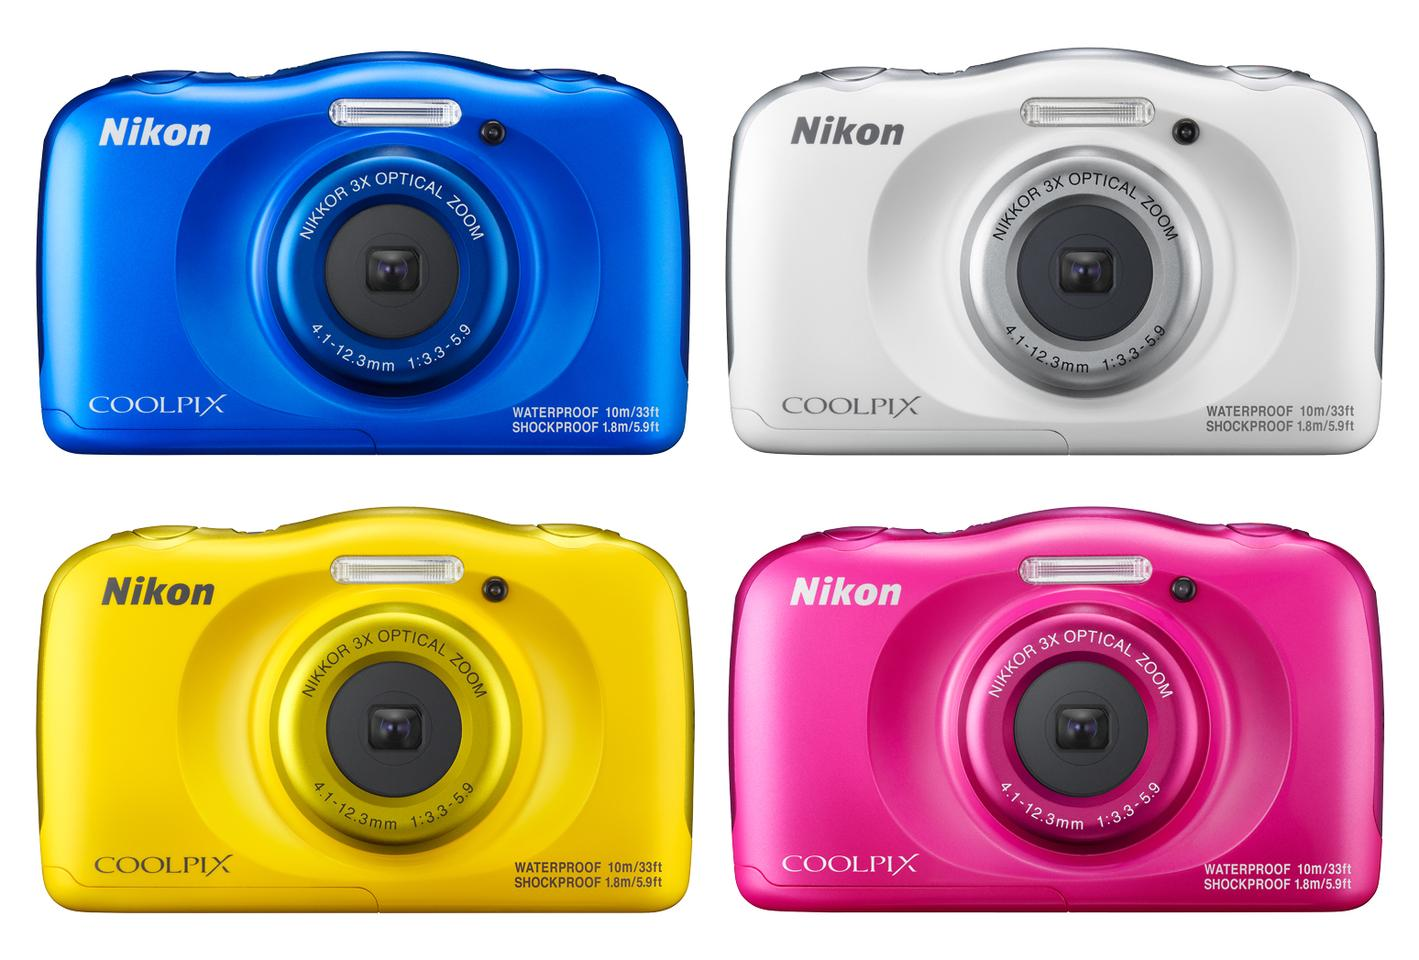 The Nikon Coolpix W100 will come in a number of bold colors